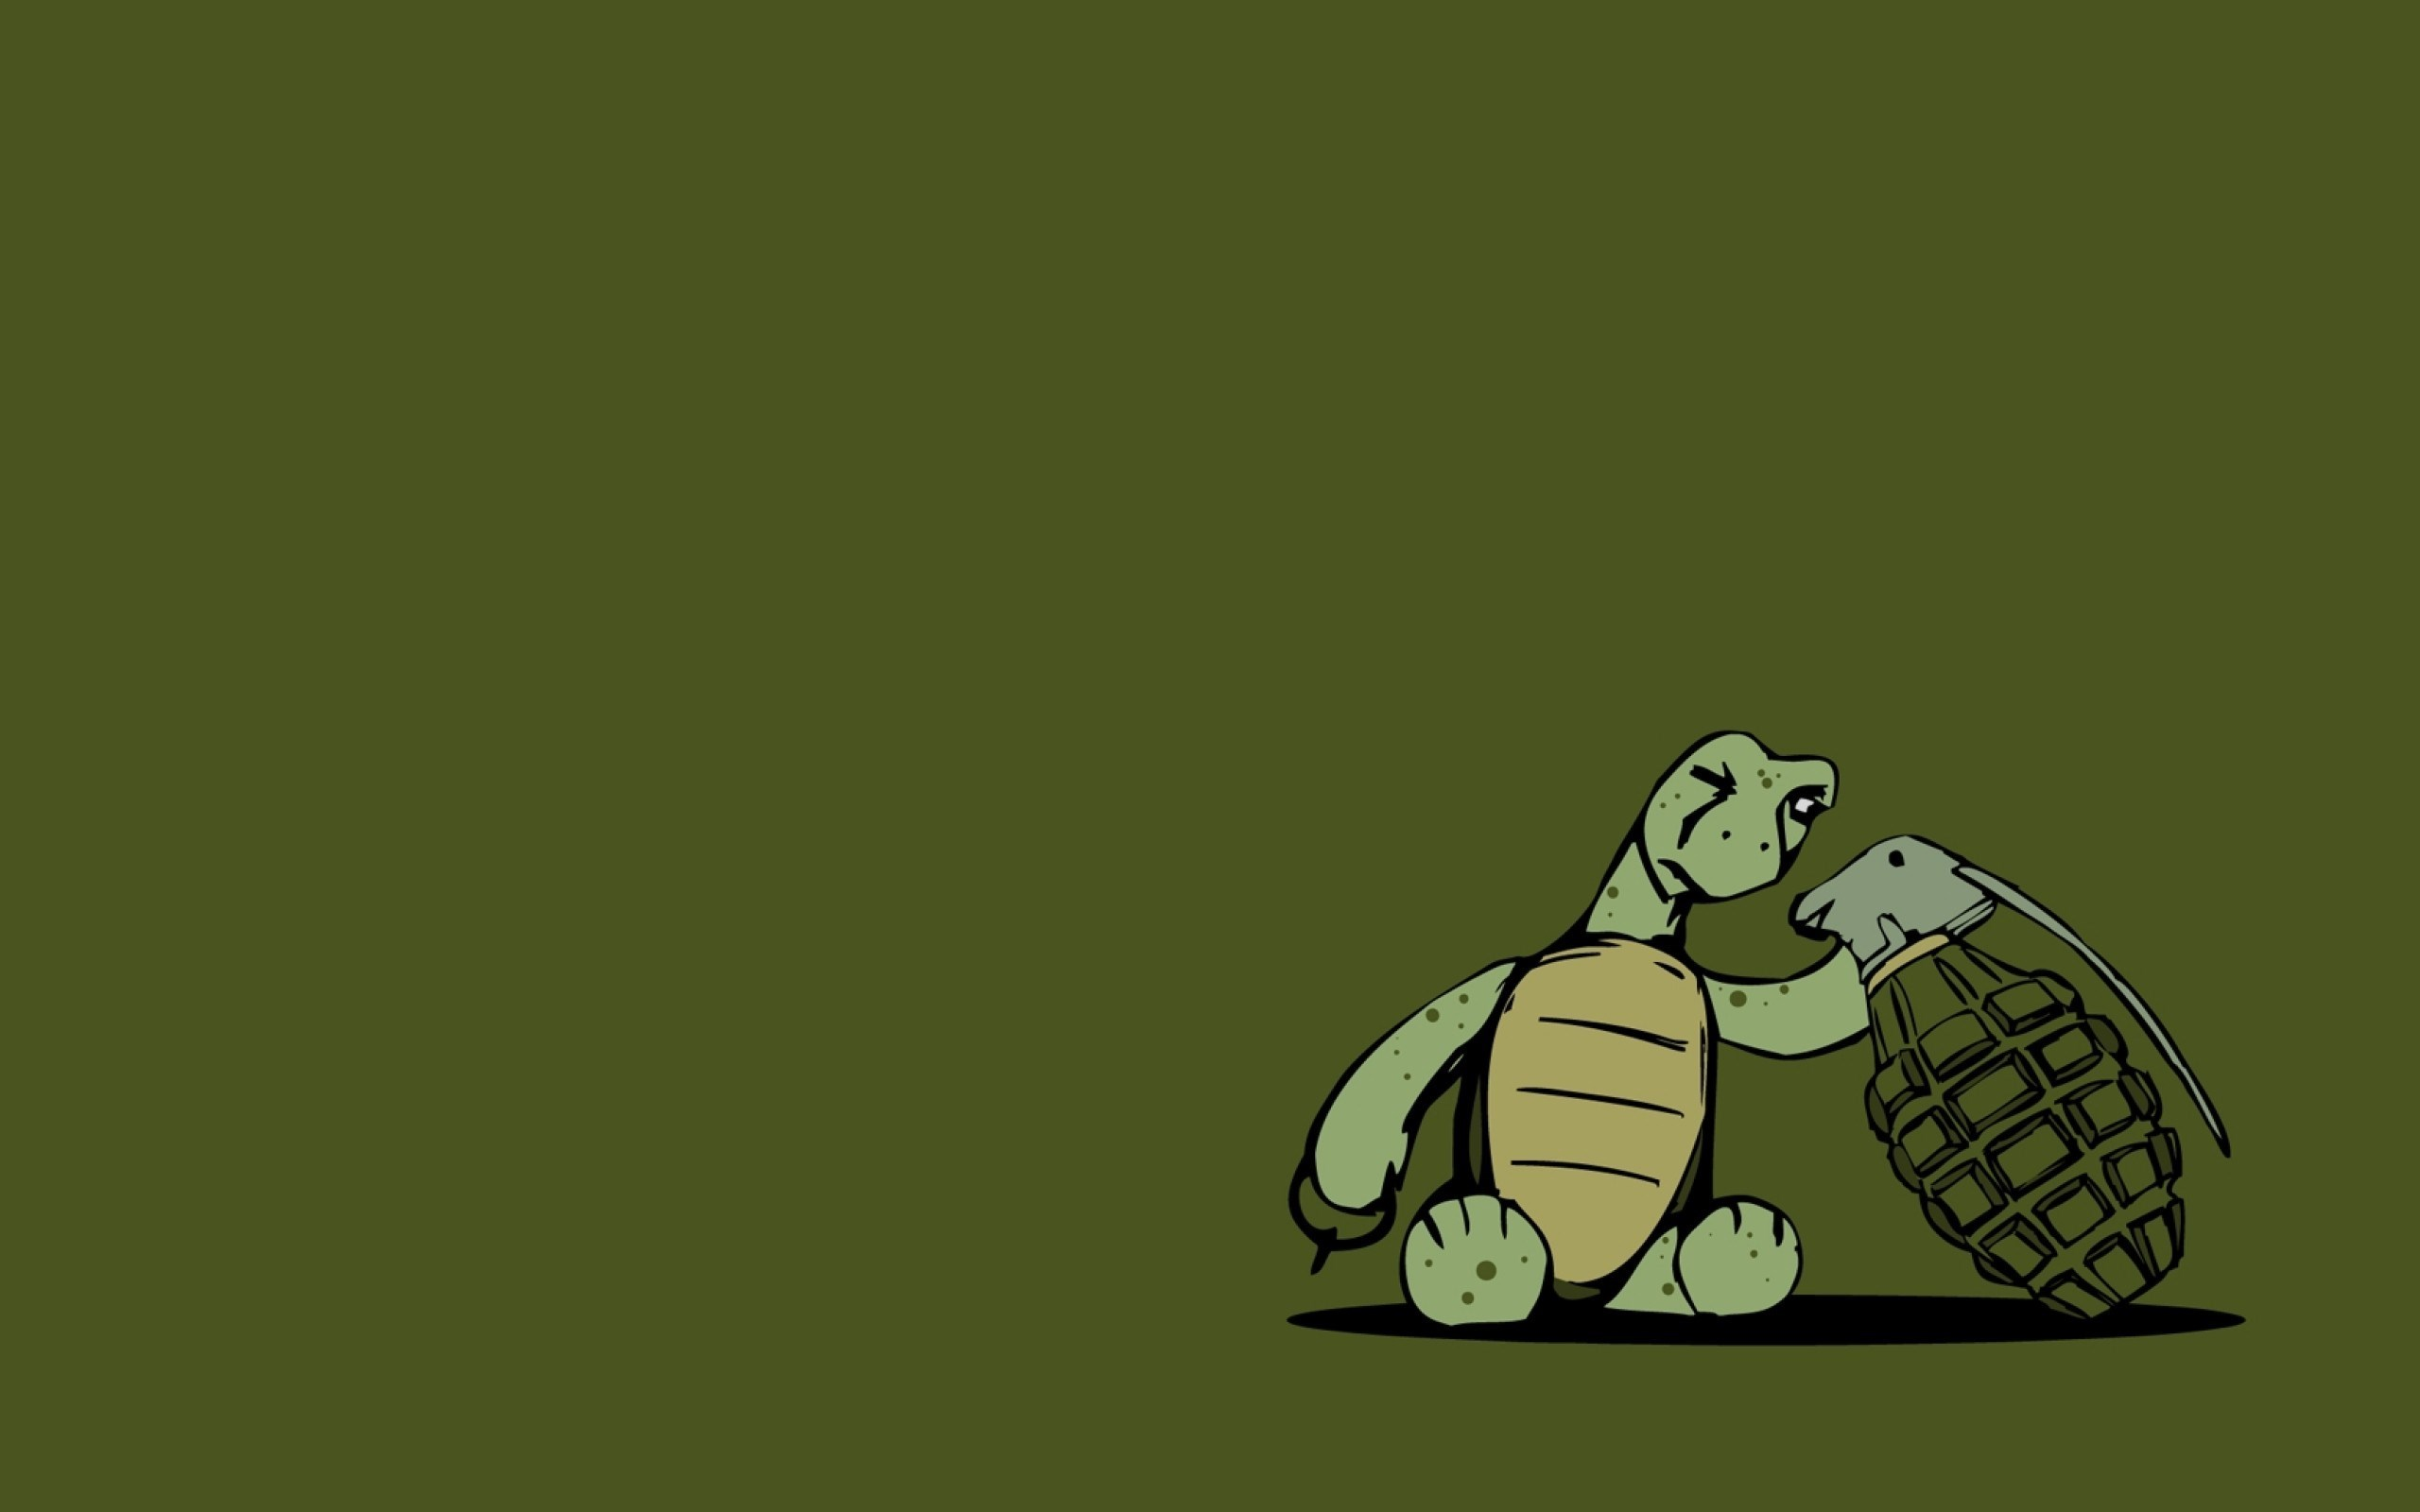 Funny 3d Animal Turtle Wallpapers Hd: Turtle Grenade Art Funny Wallpaper